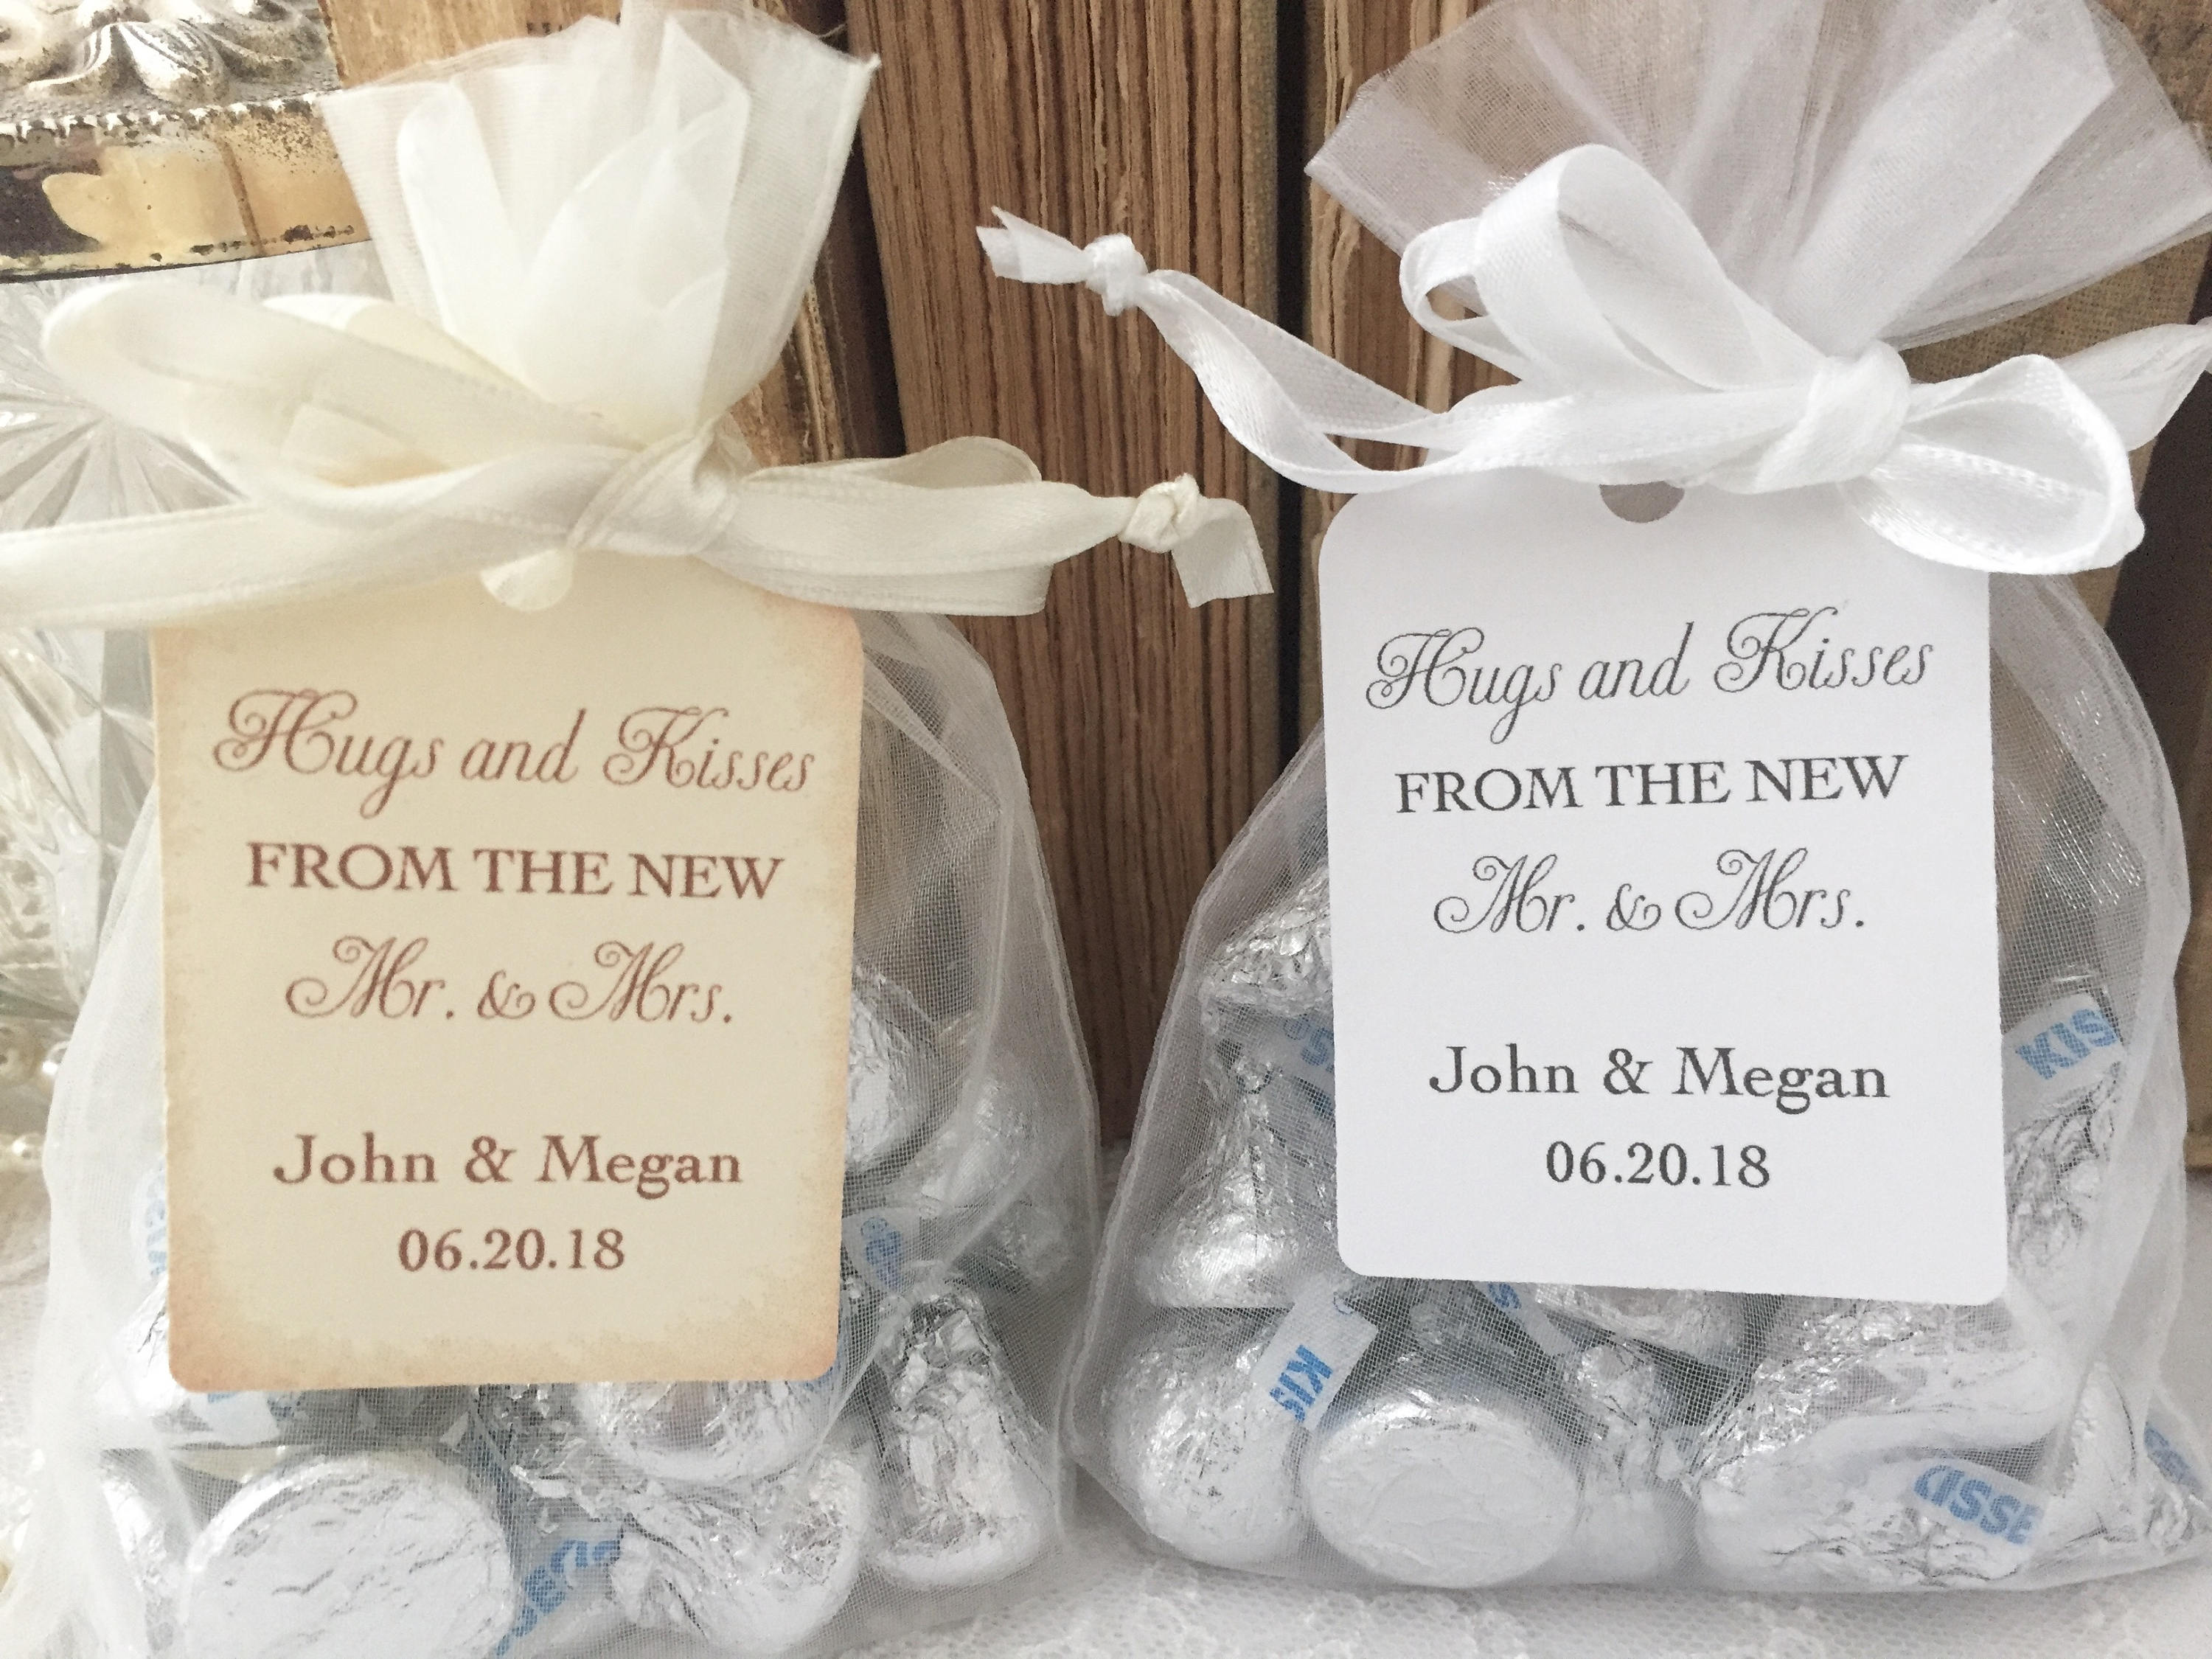 Hugs and Kisses Wedding Favors Hugs and Kisses Favor Bags